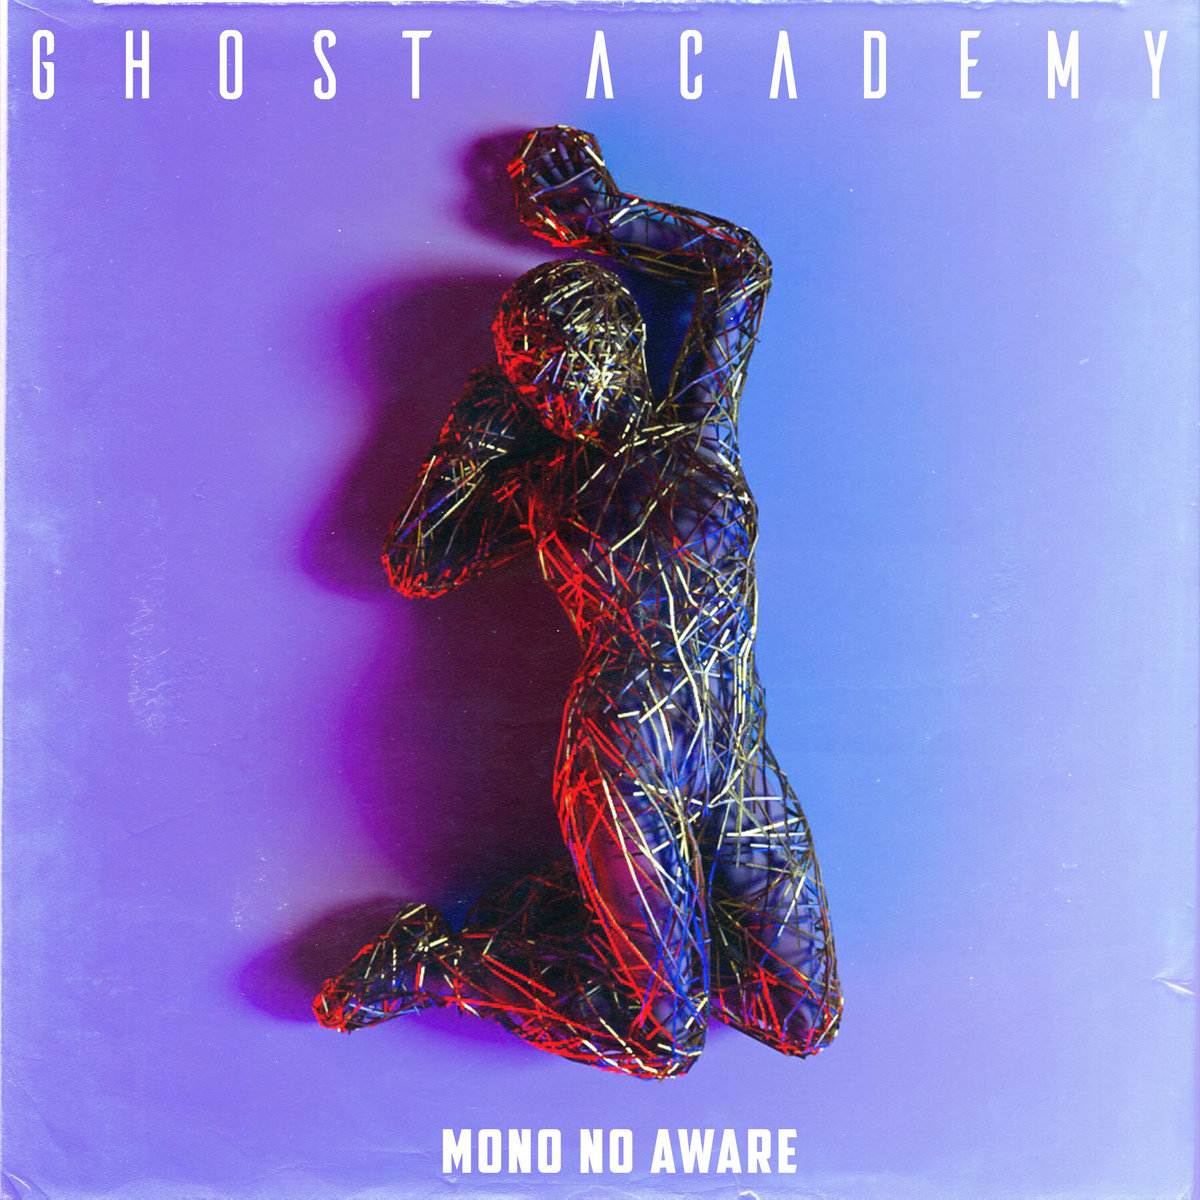 Ghost Academy - Mono No Aware [EP] (2019)